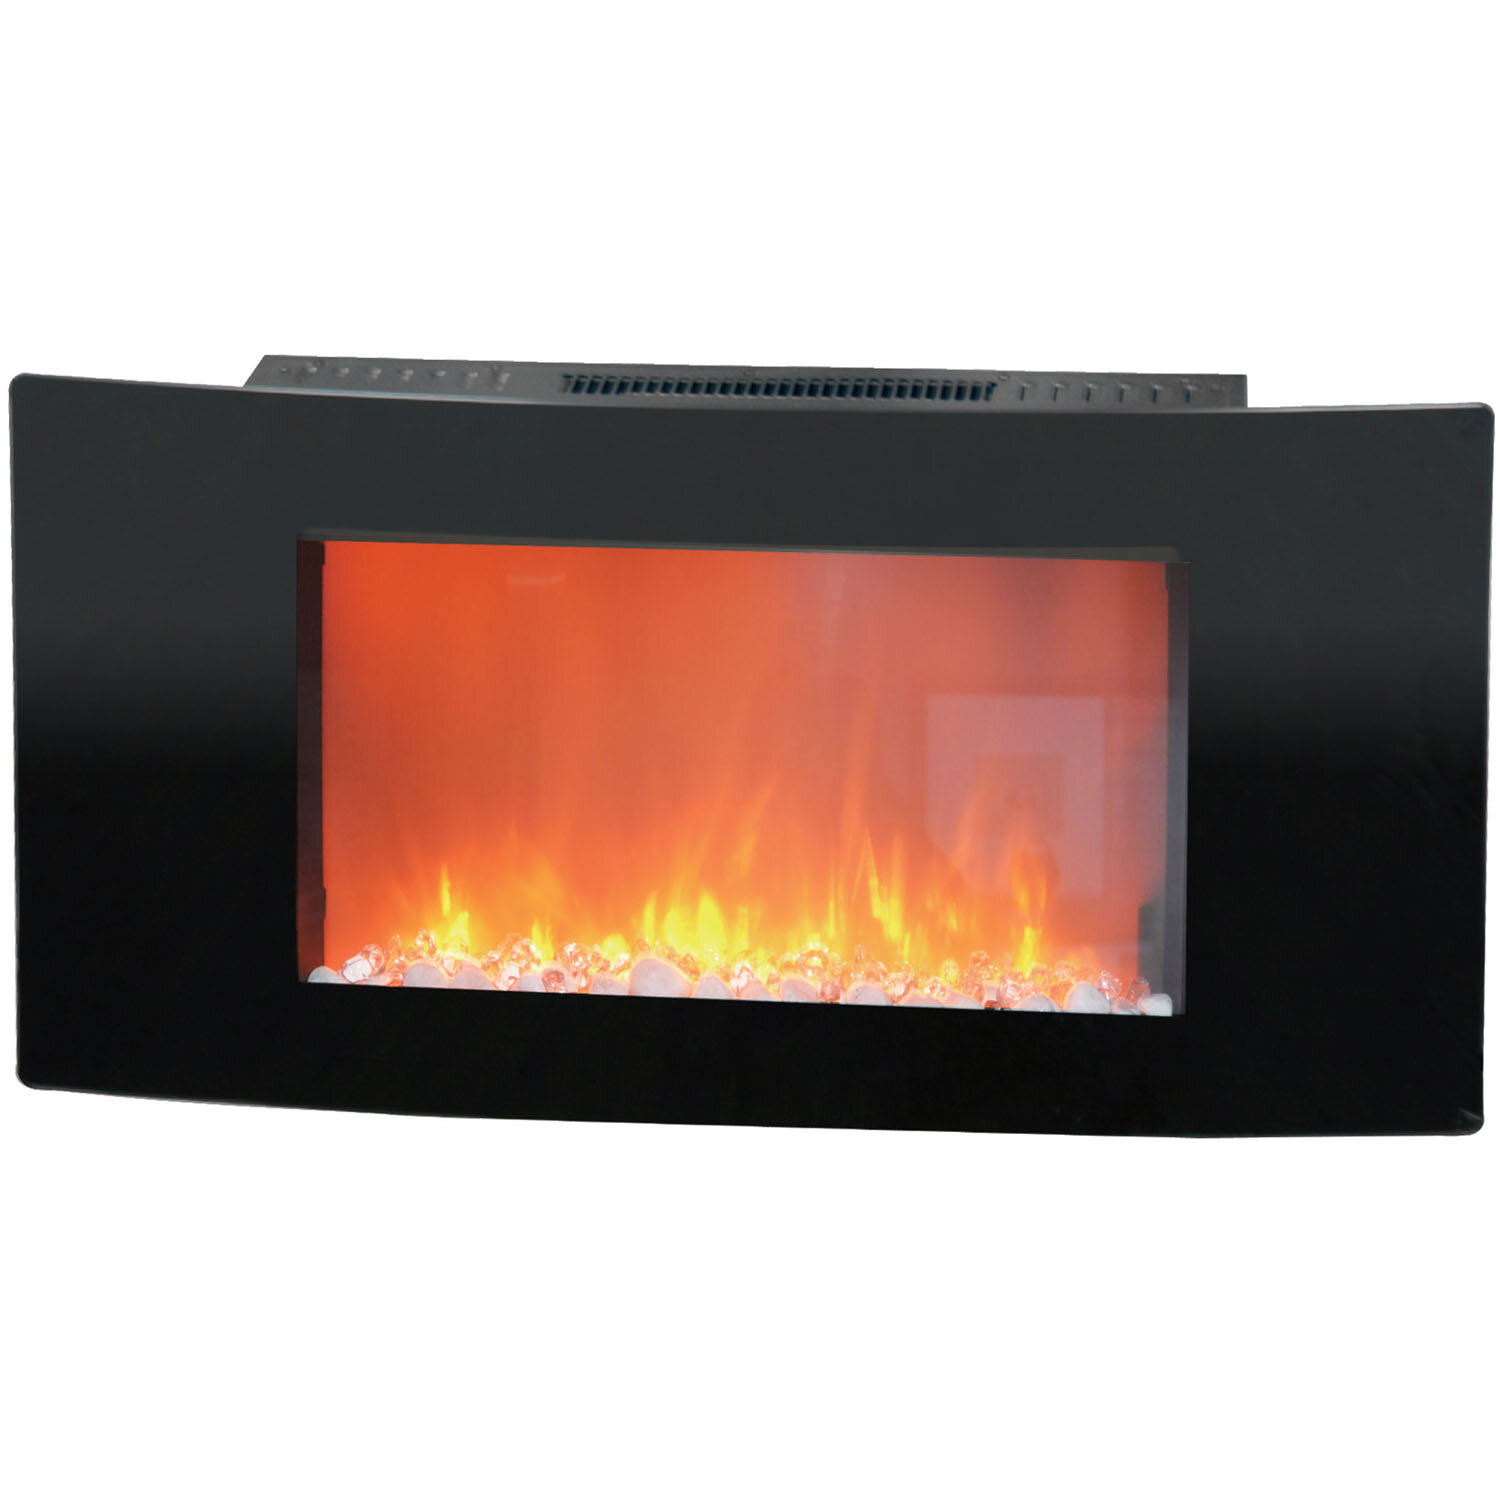 ii blaze detail wall fireplace wayfair webshop mounted diamond fireplaces en bio